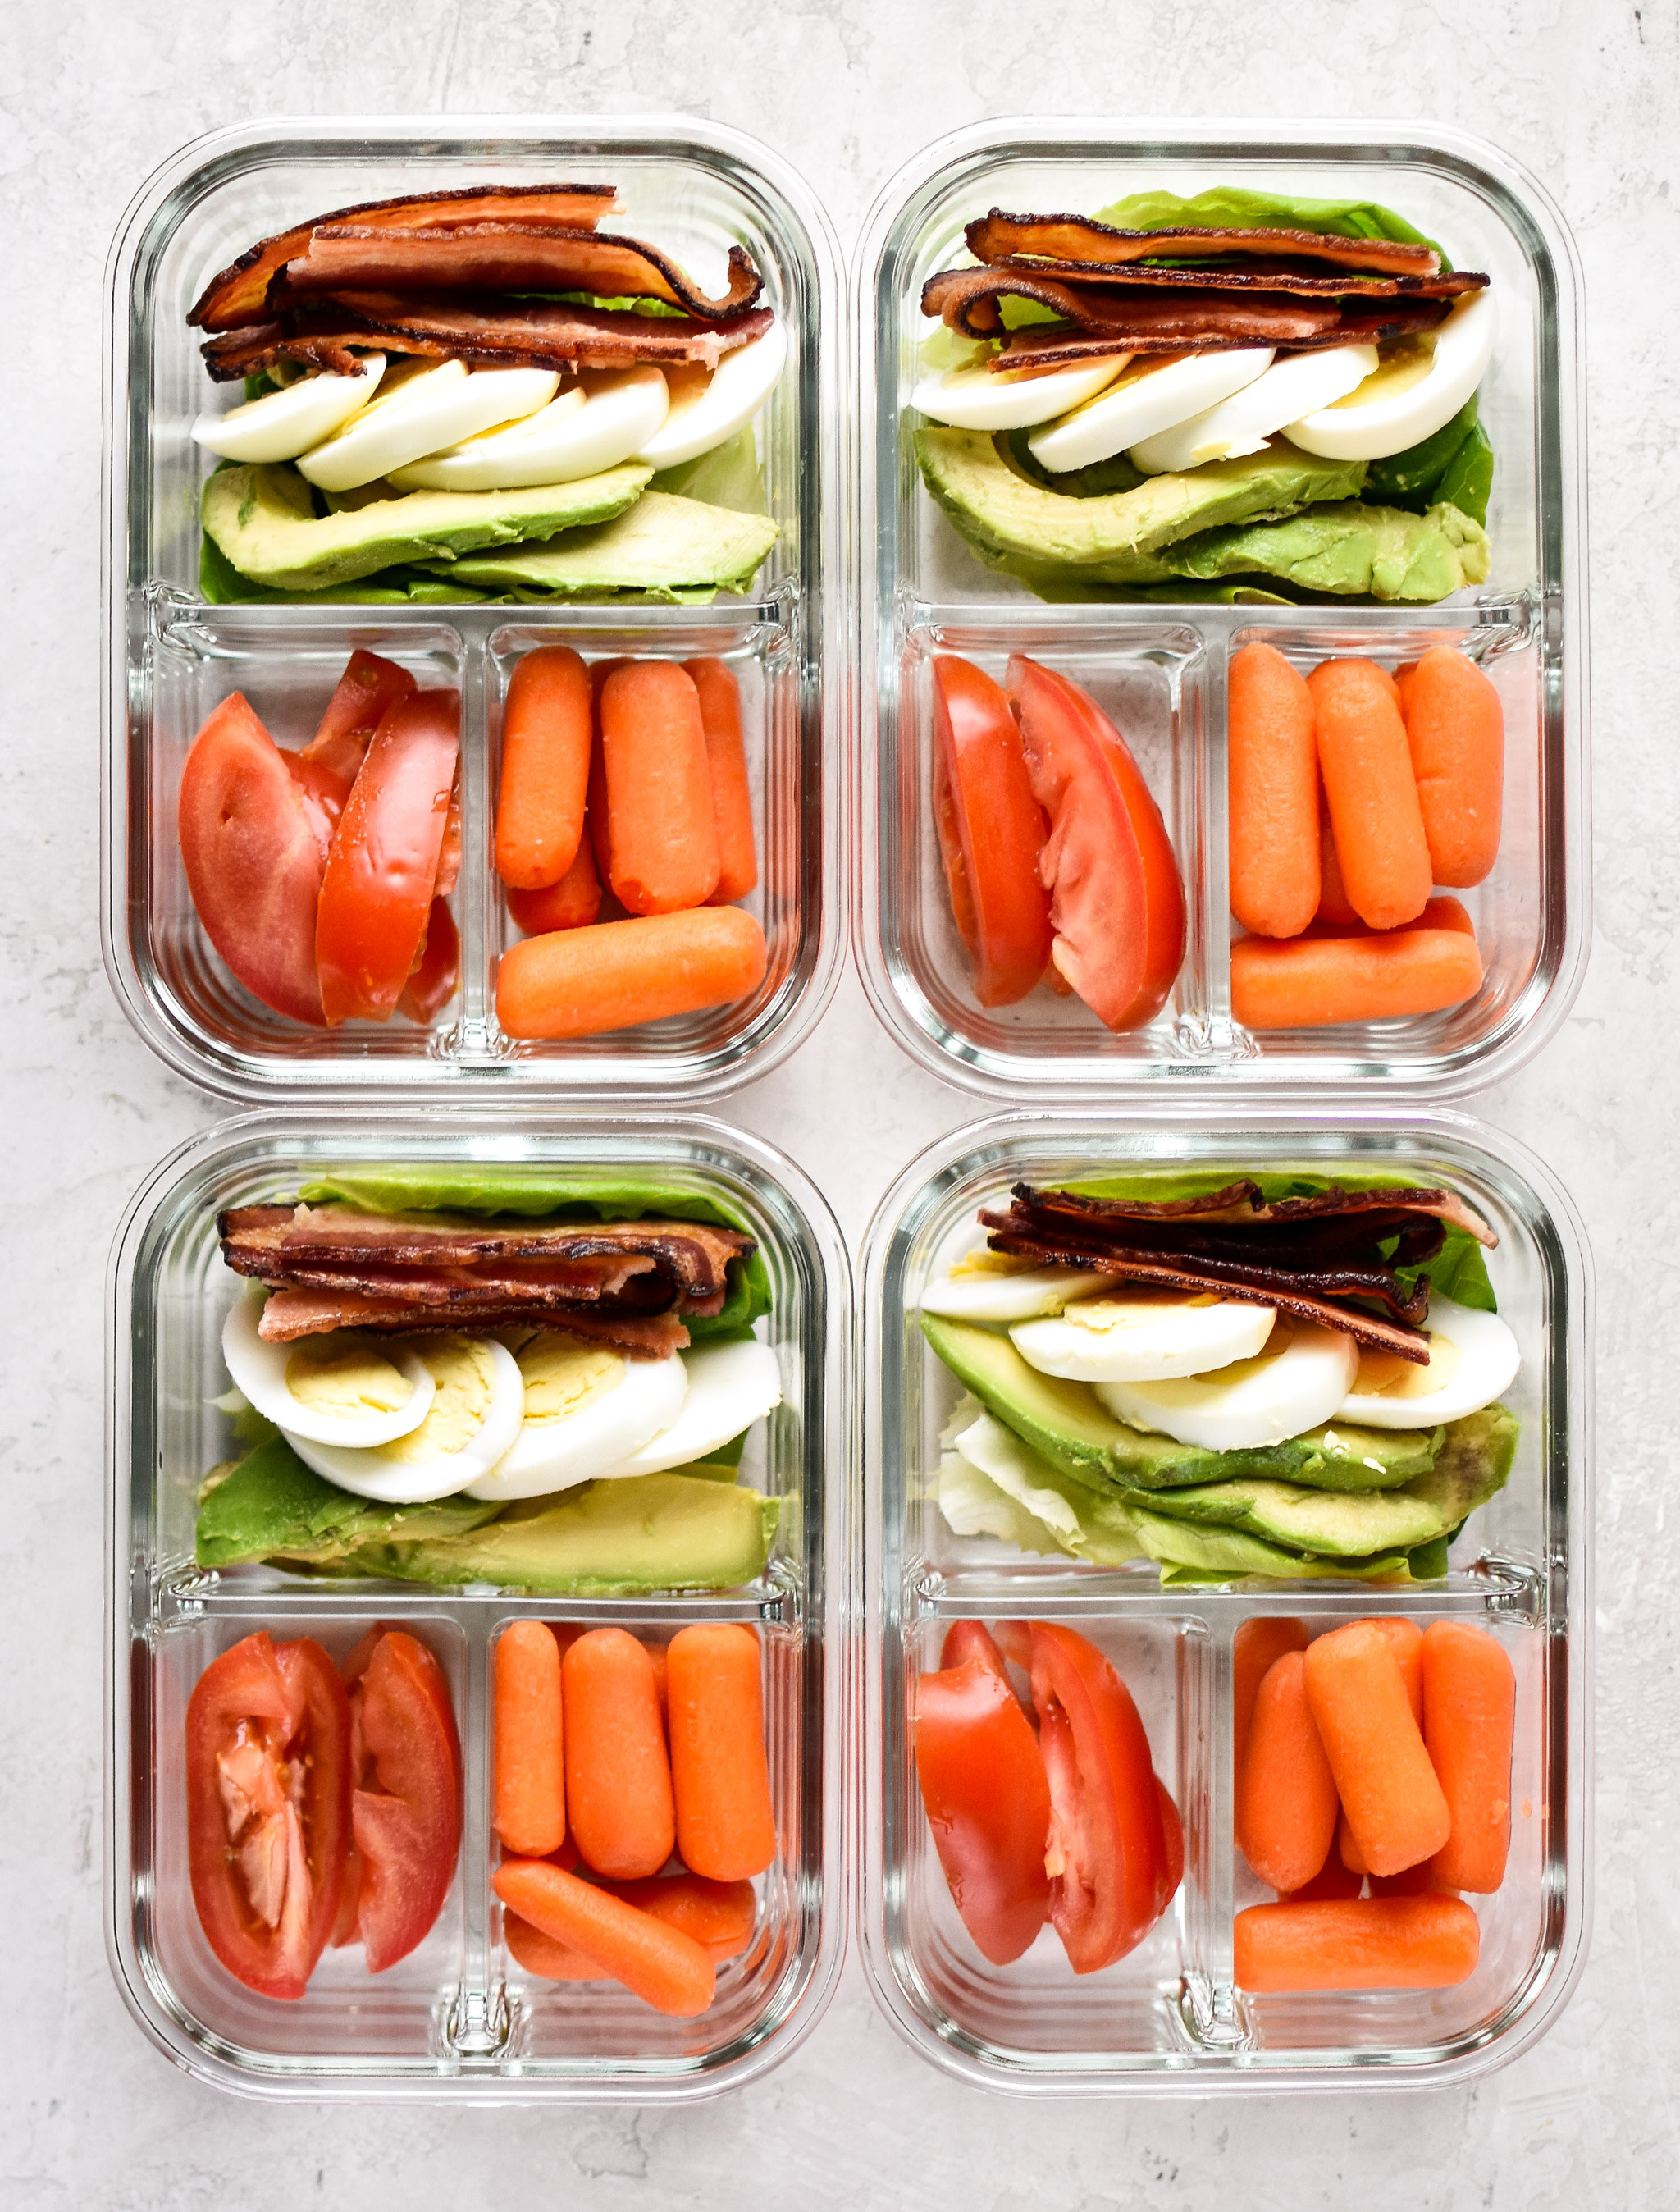 BLTA Lettuce Wraps Meal Prep pictured in 4 meal prep containers from above with baby carrots.